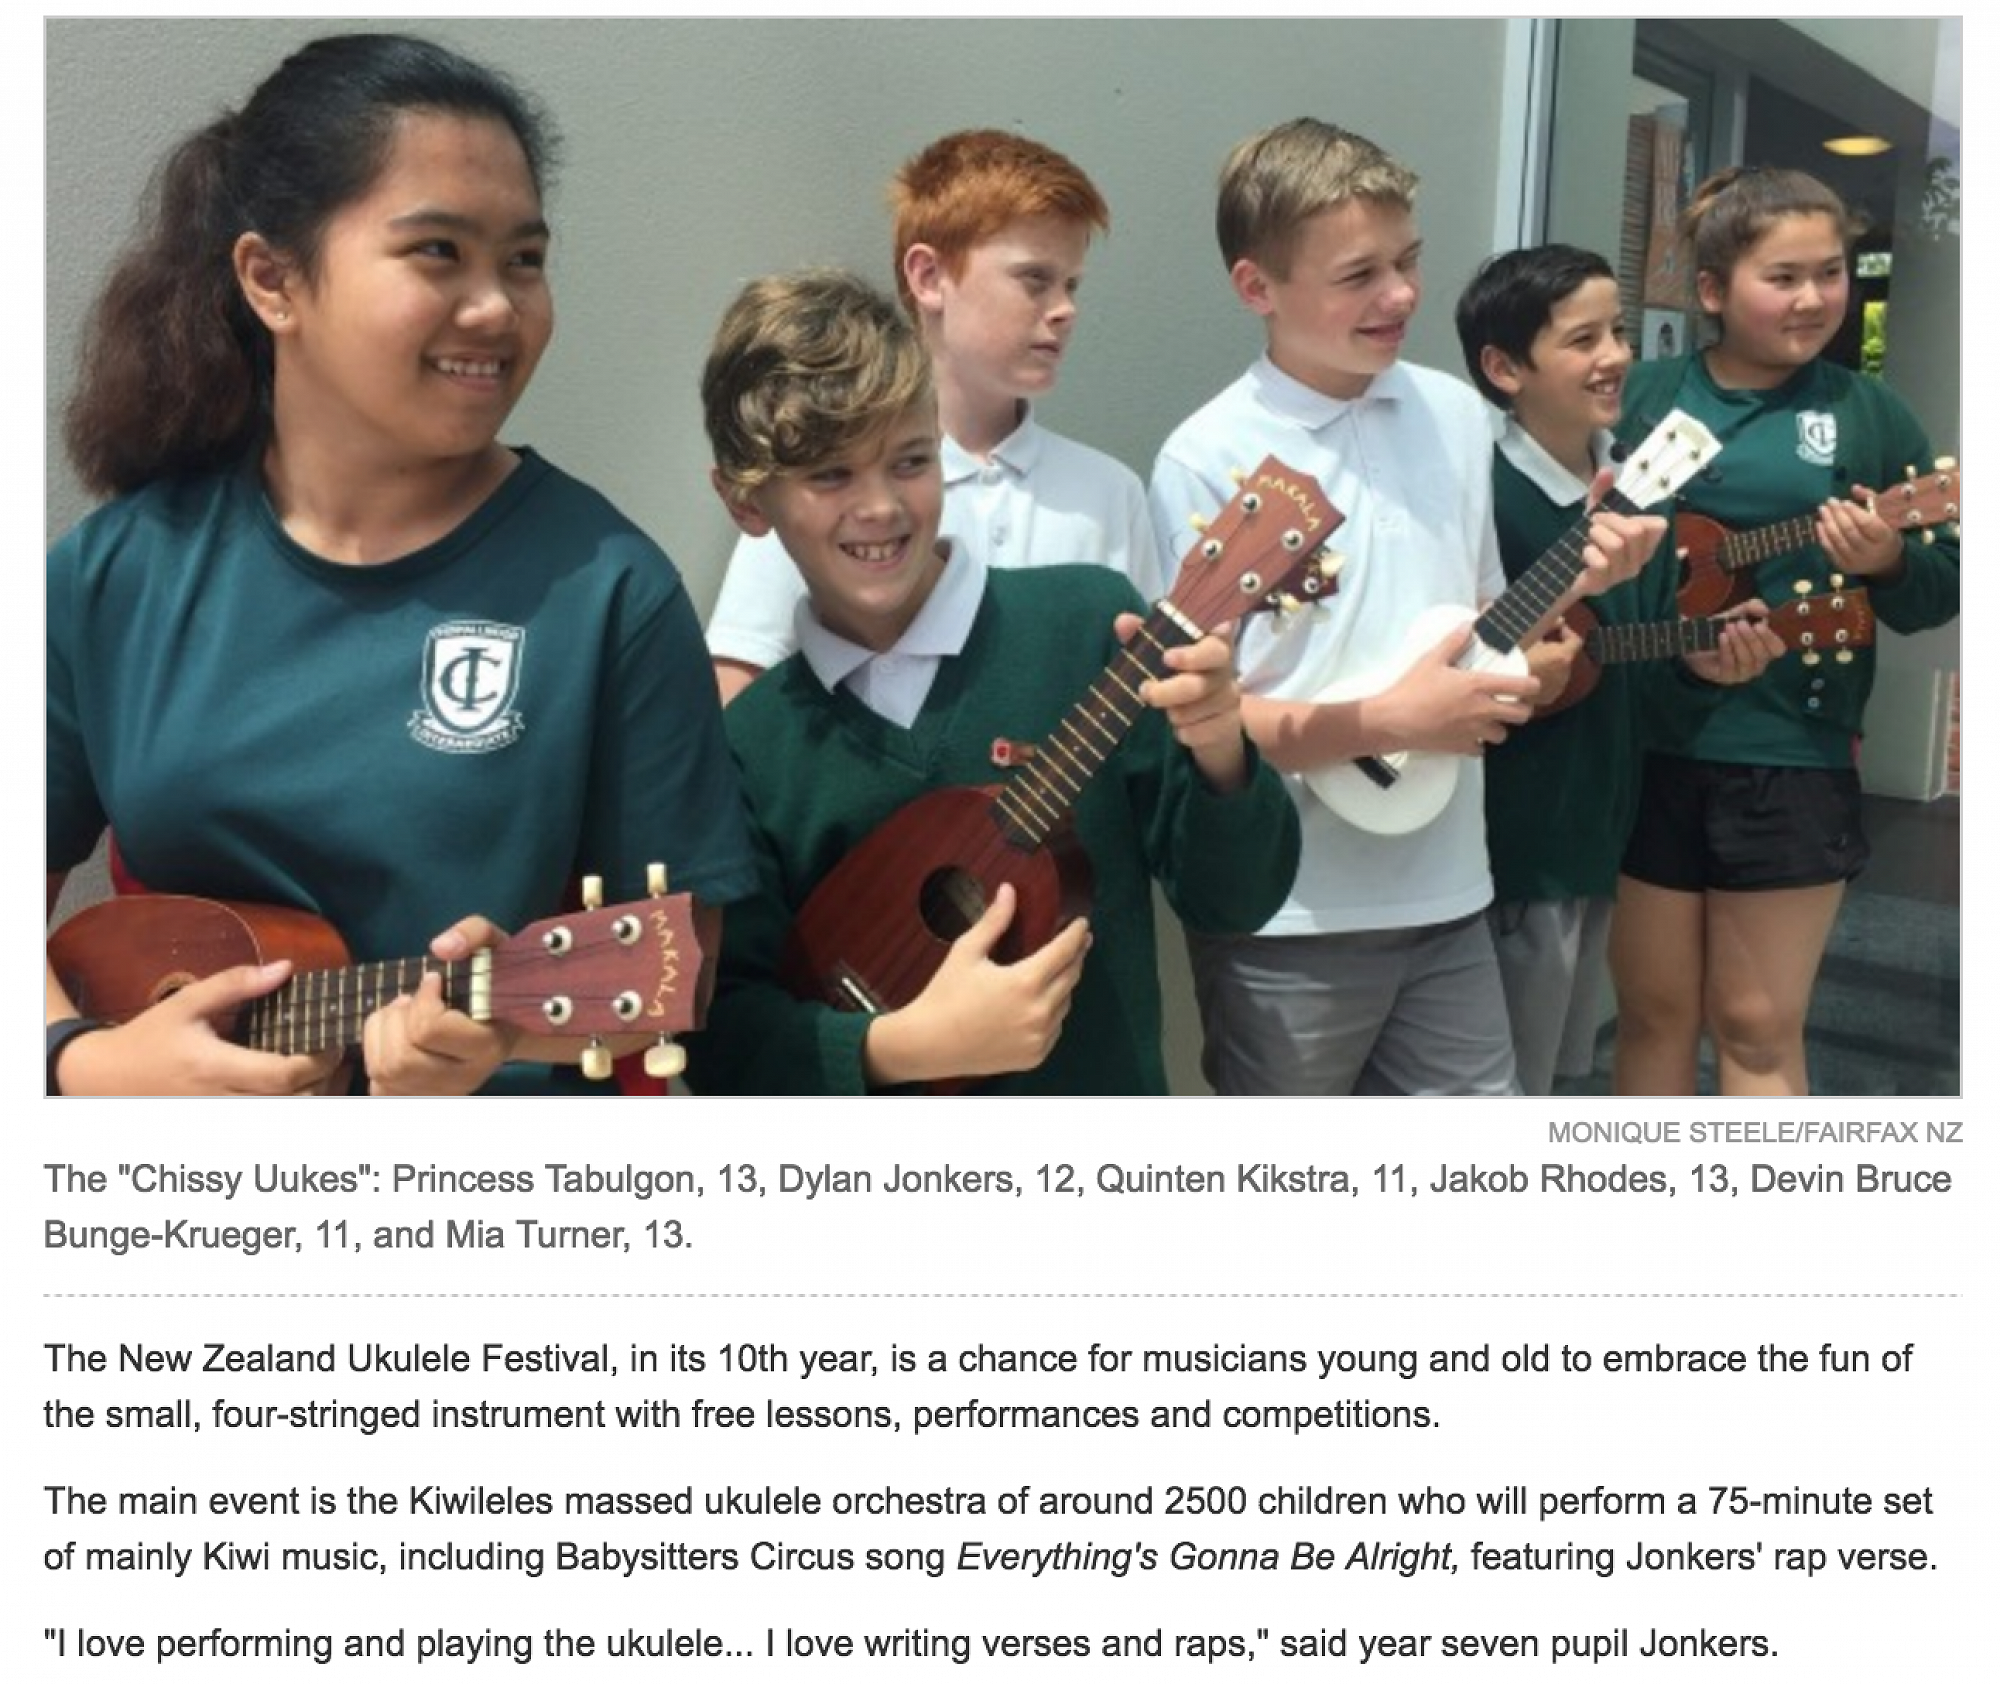 Full article at http://www.stuff.co.nz/the-press/86861520/christchurch-school-only-south-islanders-to-attend-ukulele-festival-in-auckland